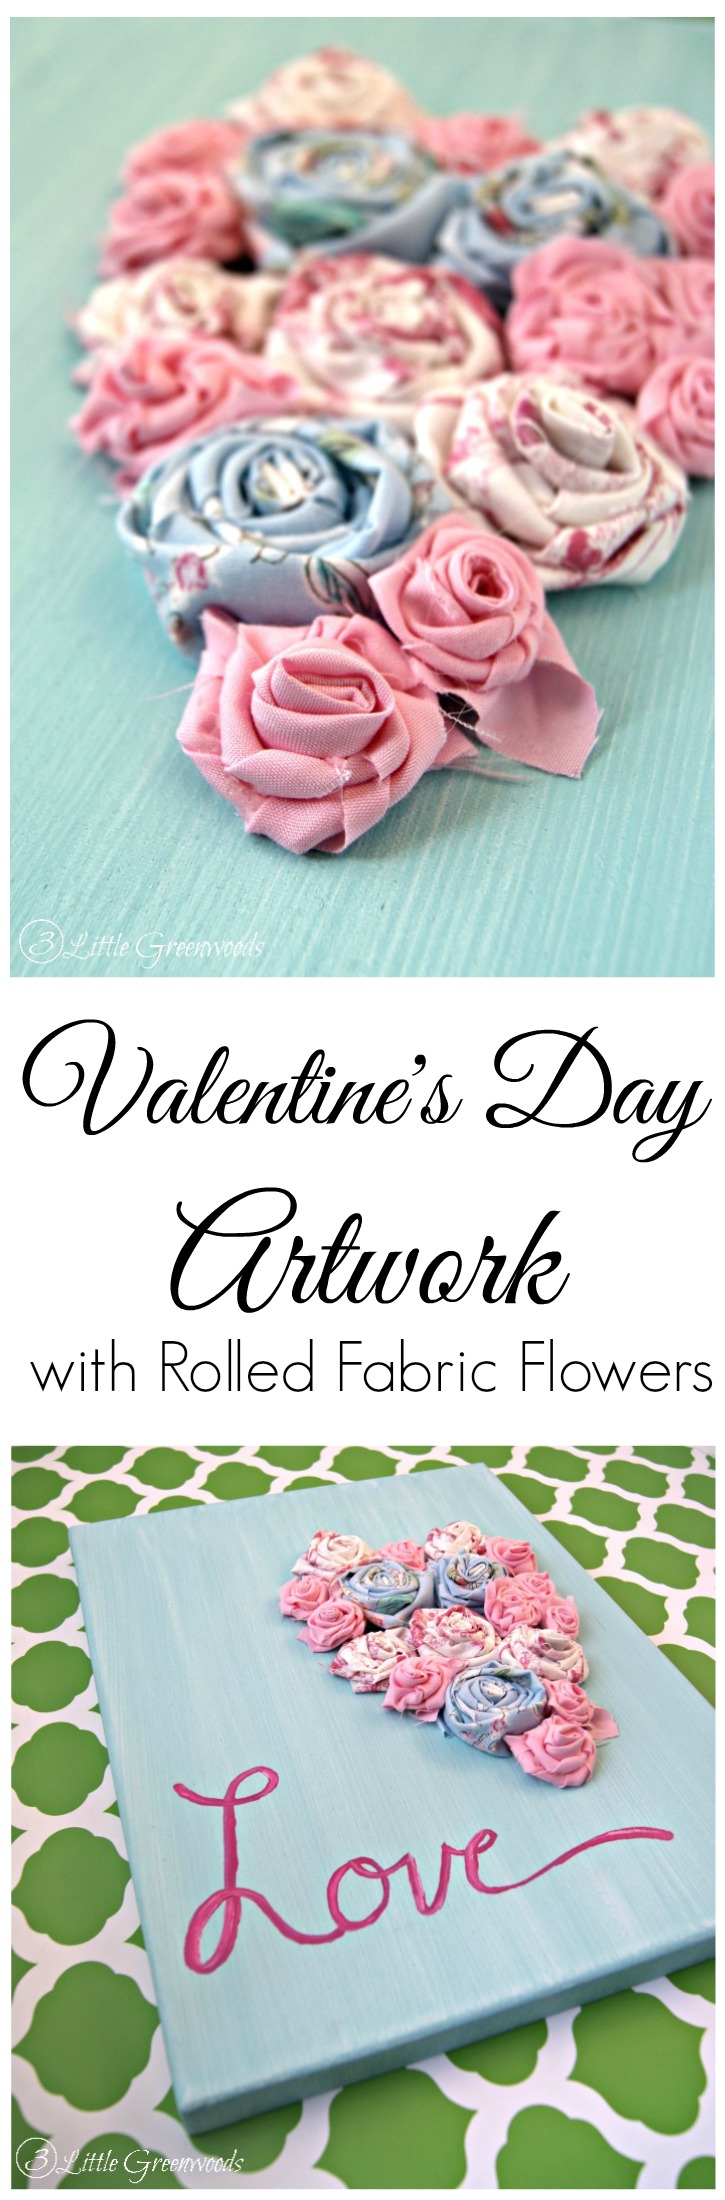 Bust your scrap fabric stash with this Adorable Rolled Fabric Flowers Artwork for Valentine's Day {Plus more Valentine's Day Crafts} // 3 Little Greenwoods